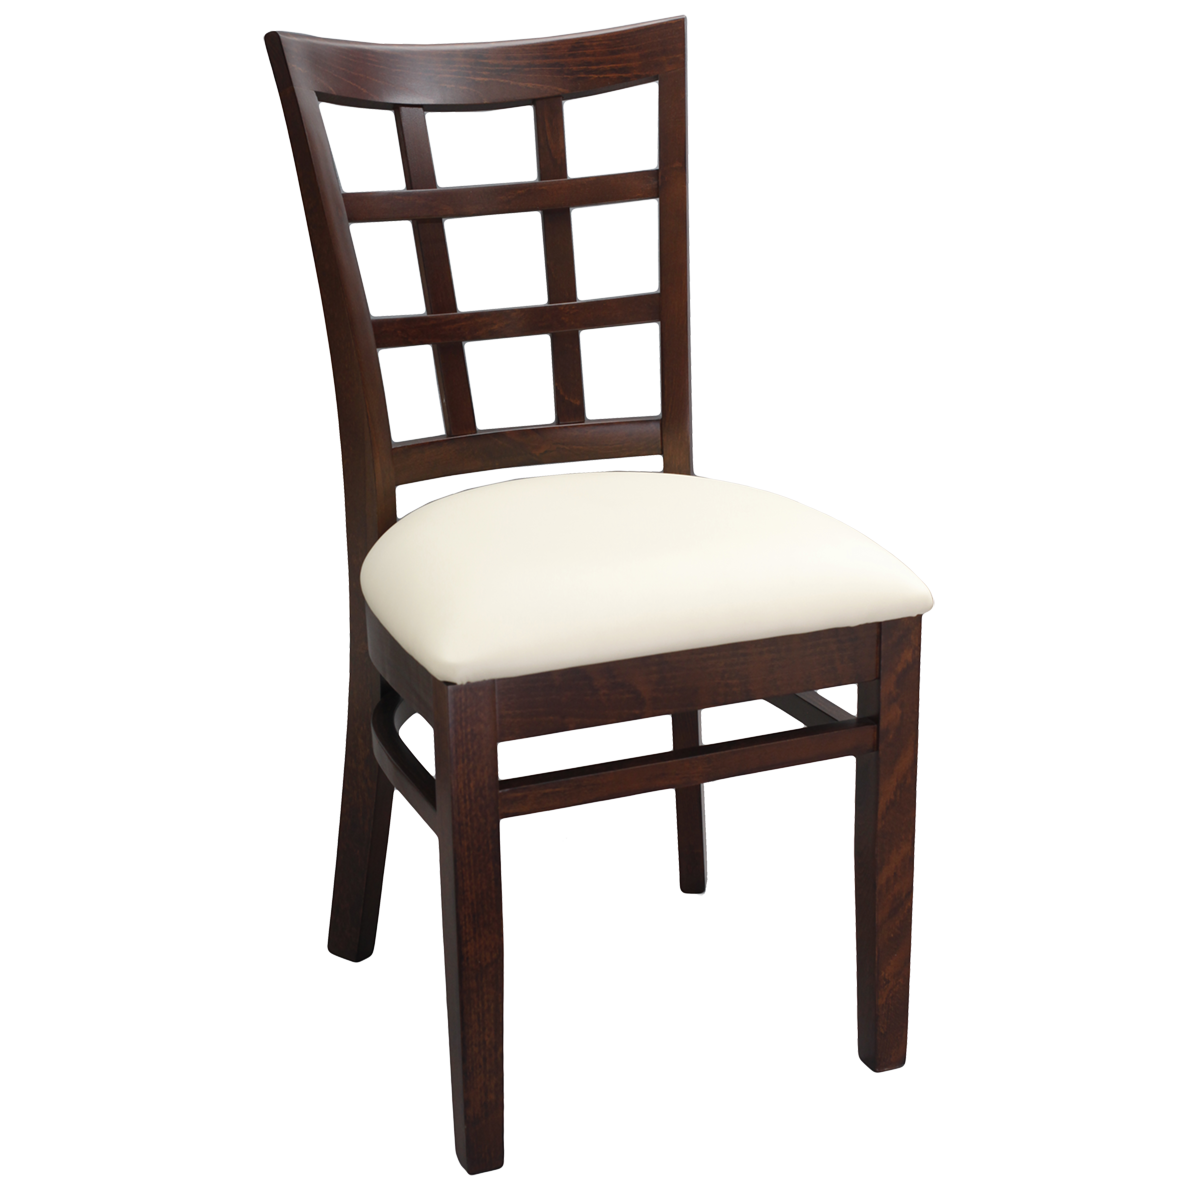 window chair furniture. Wood Window Back Chair Window Chair Furniture